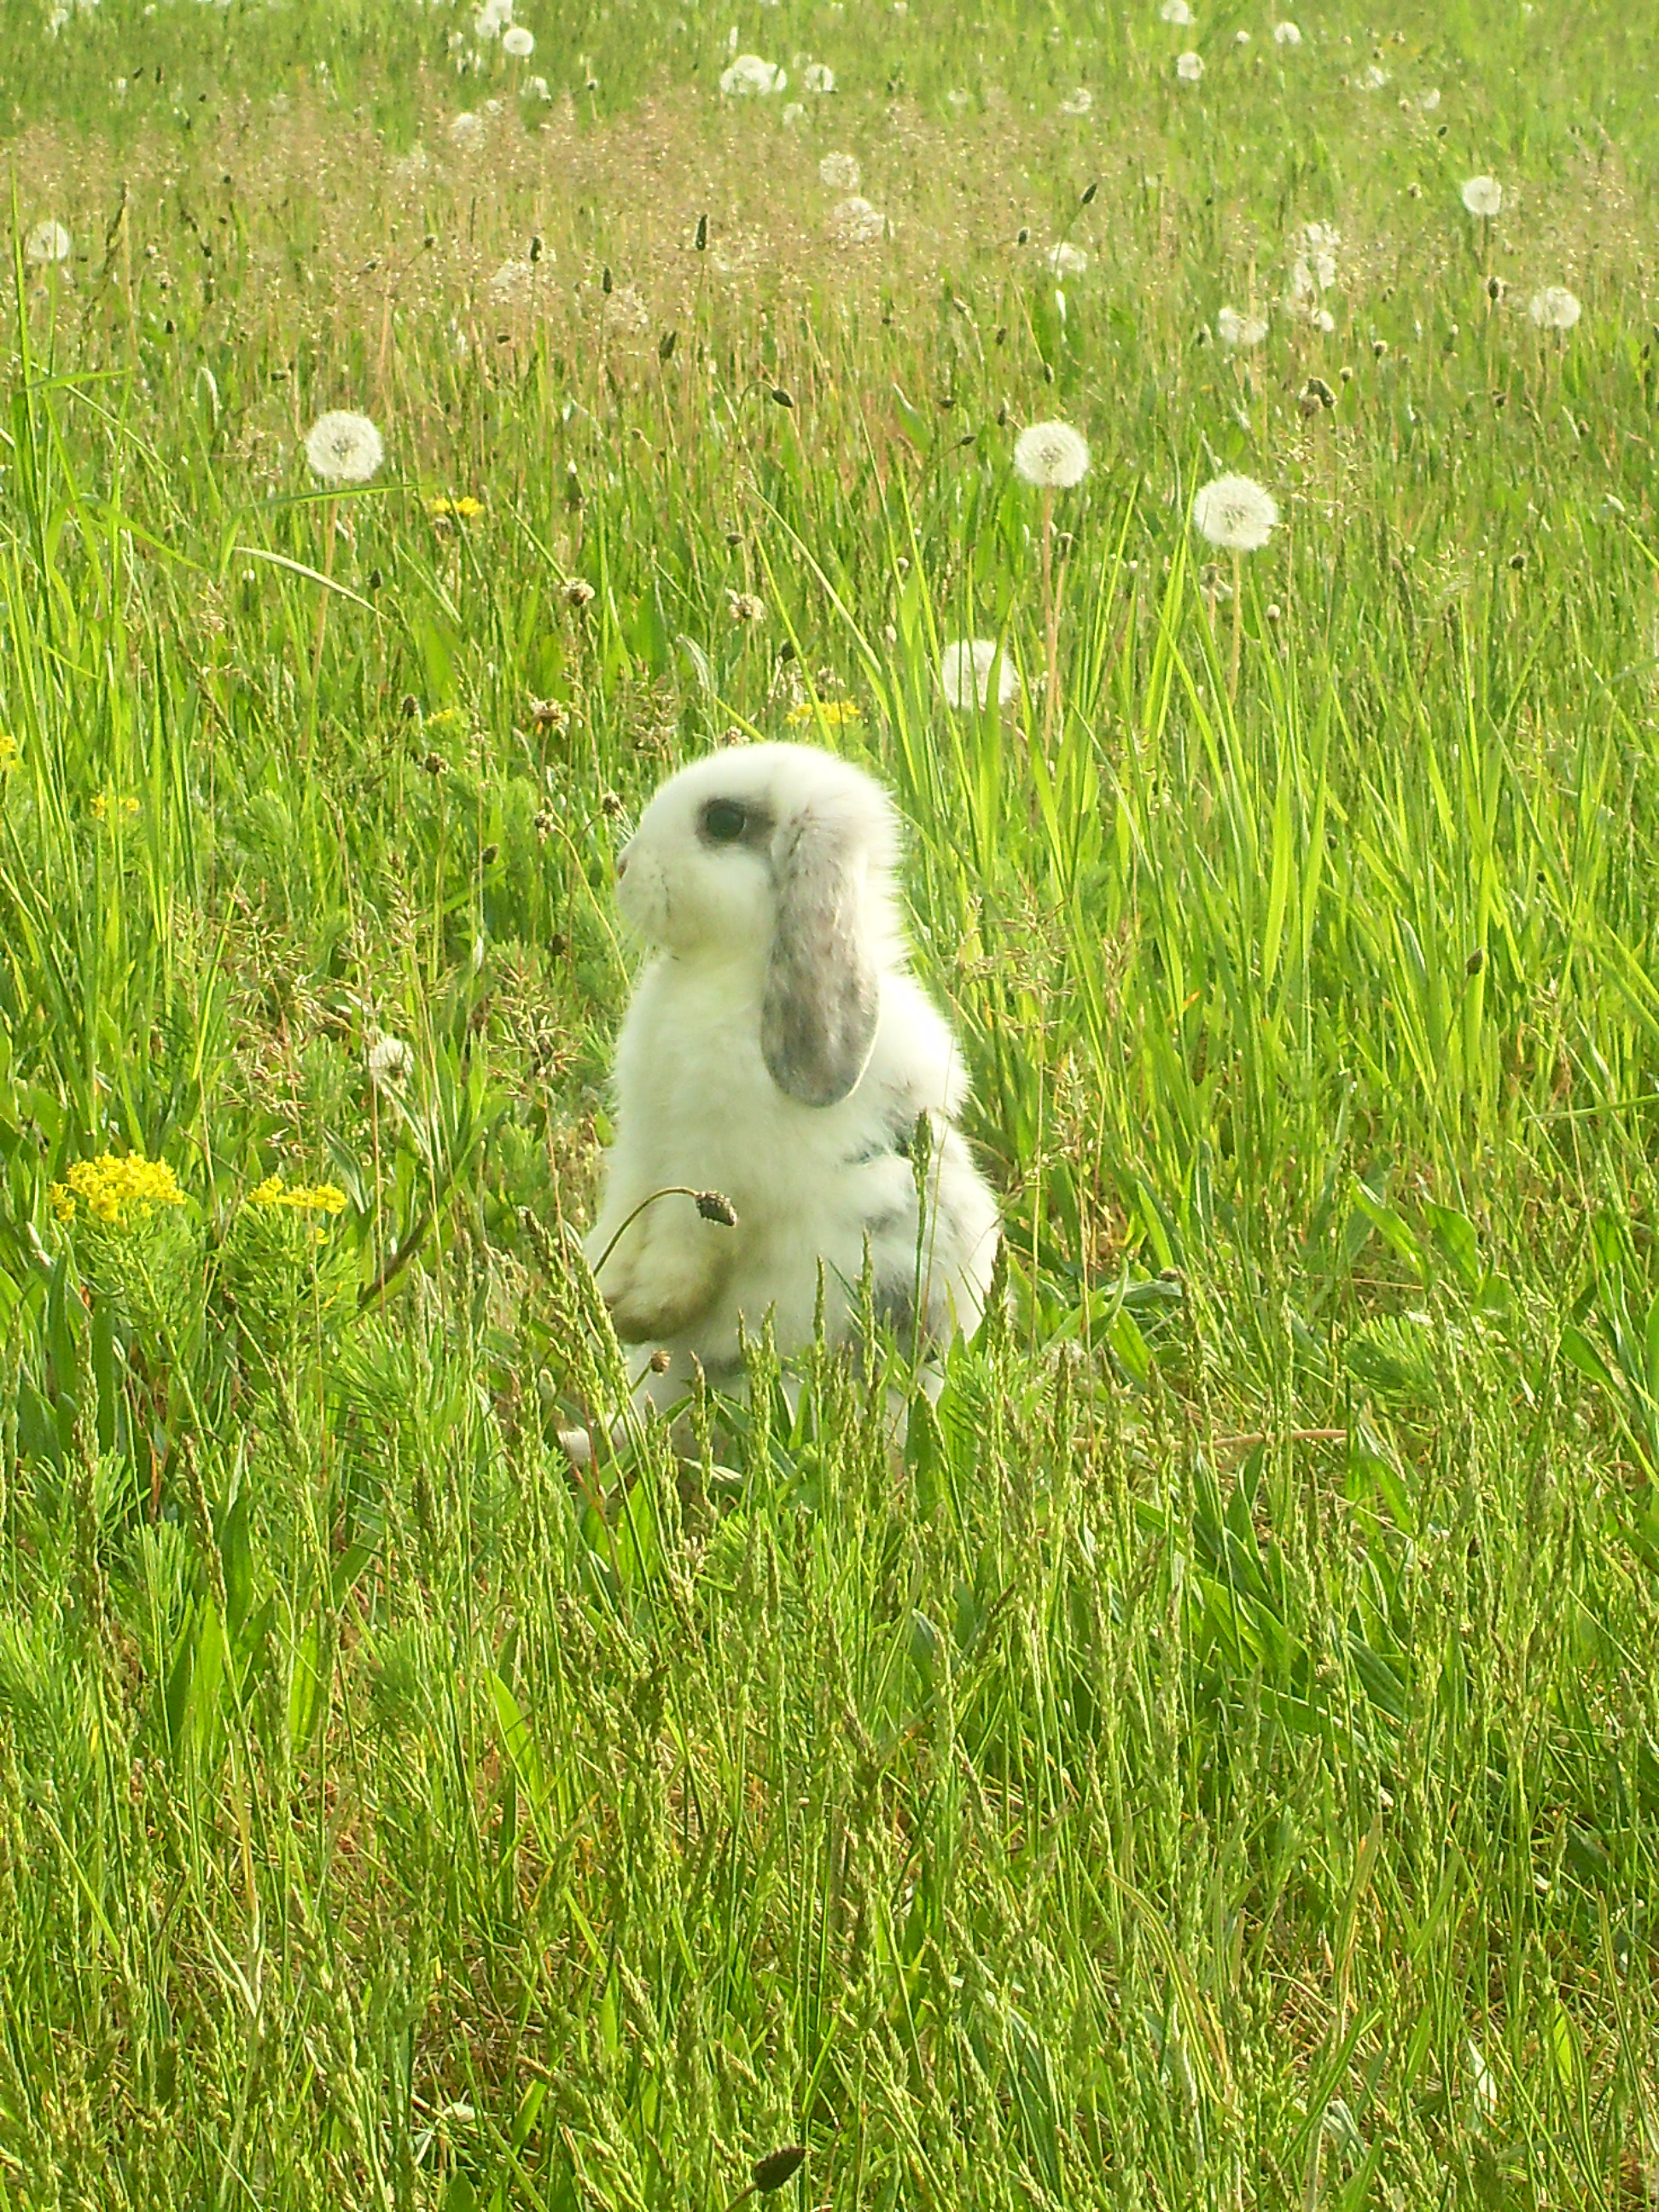 Bunny Stands in a Field of Dandelions and Grass